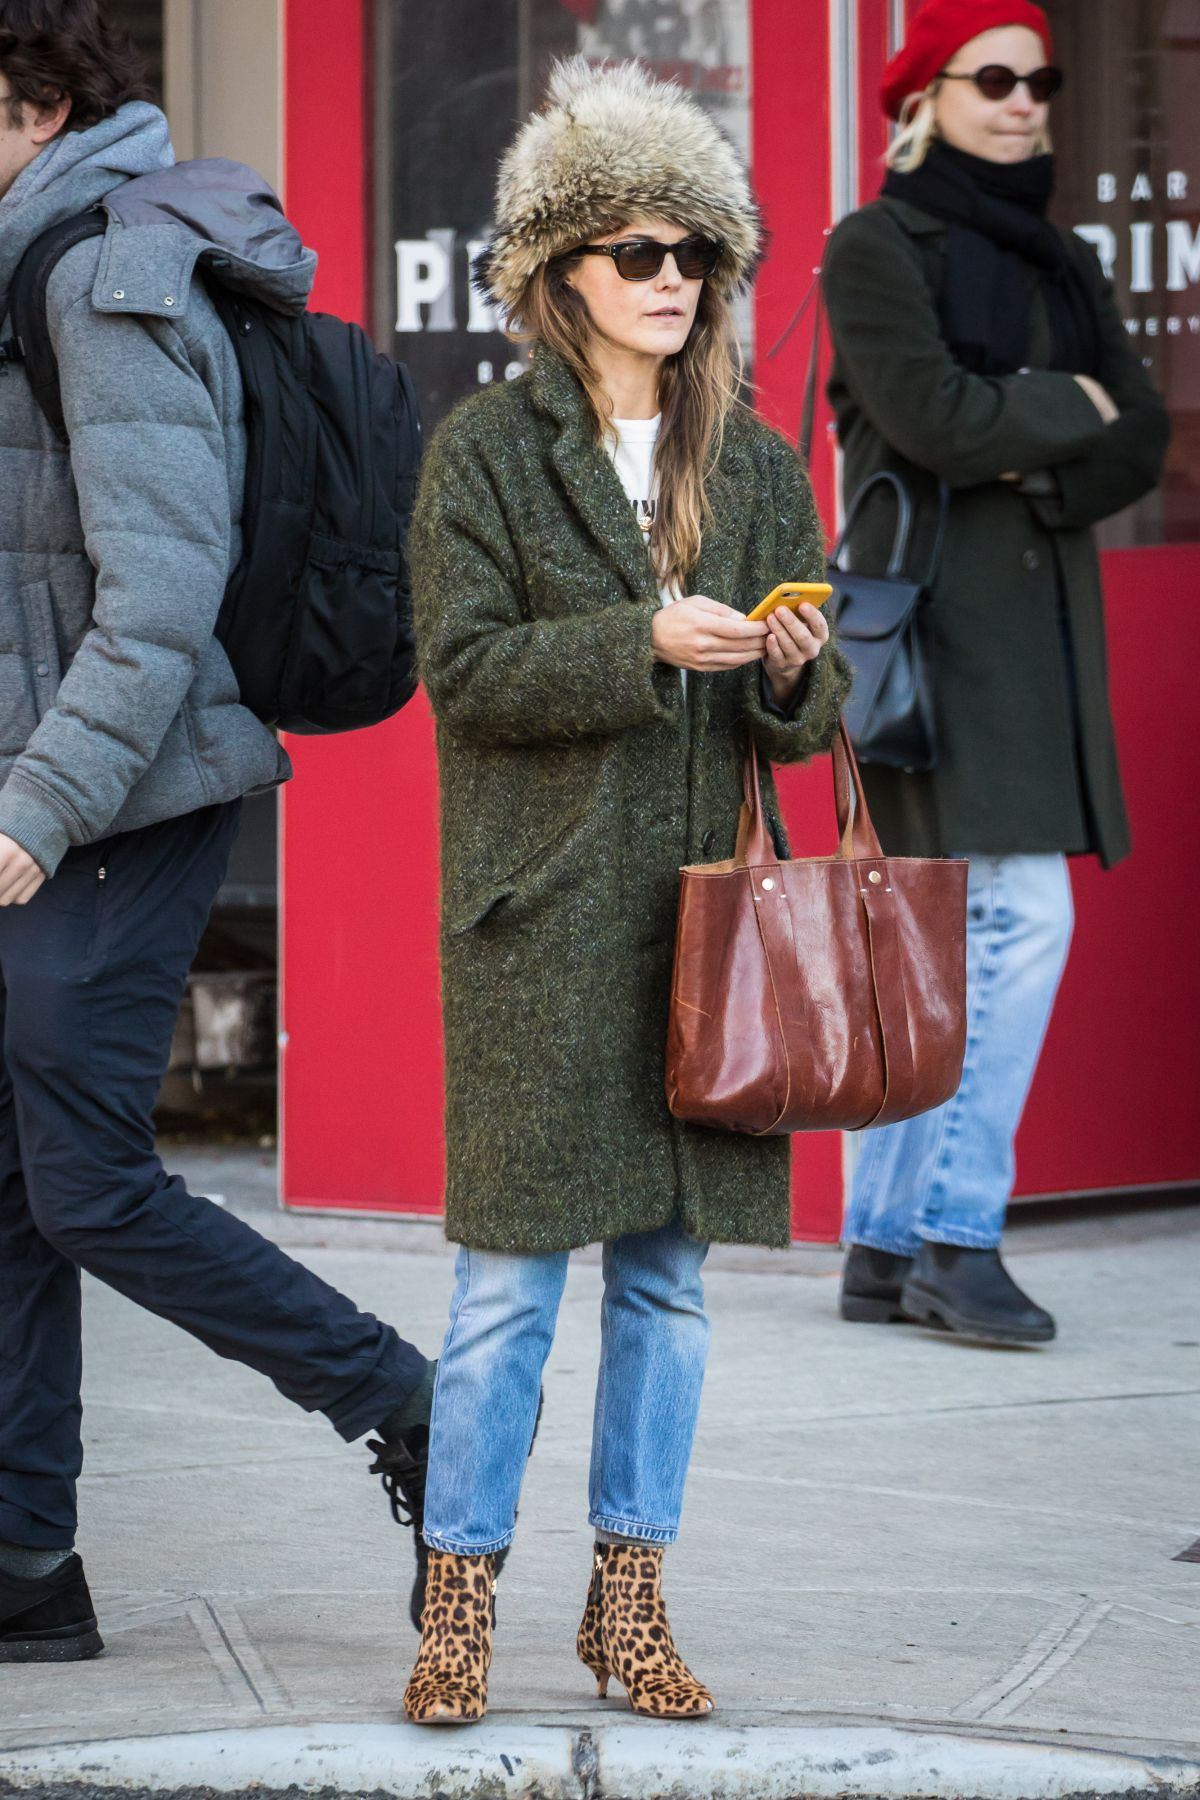 Keri russell winter in nyc naked (74 pictures)